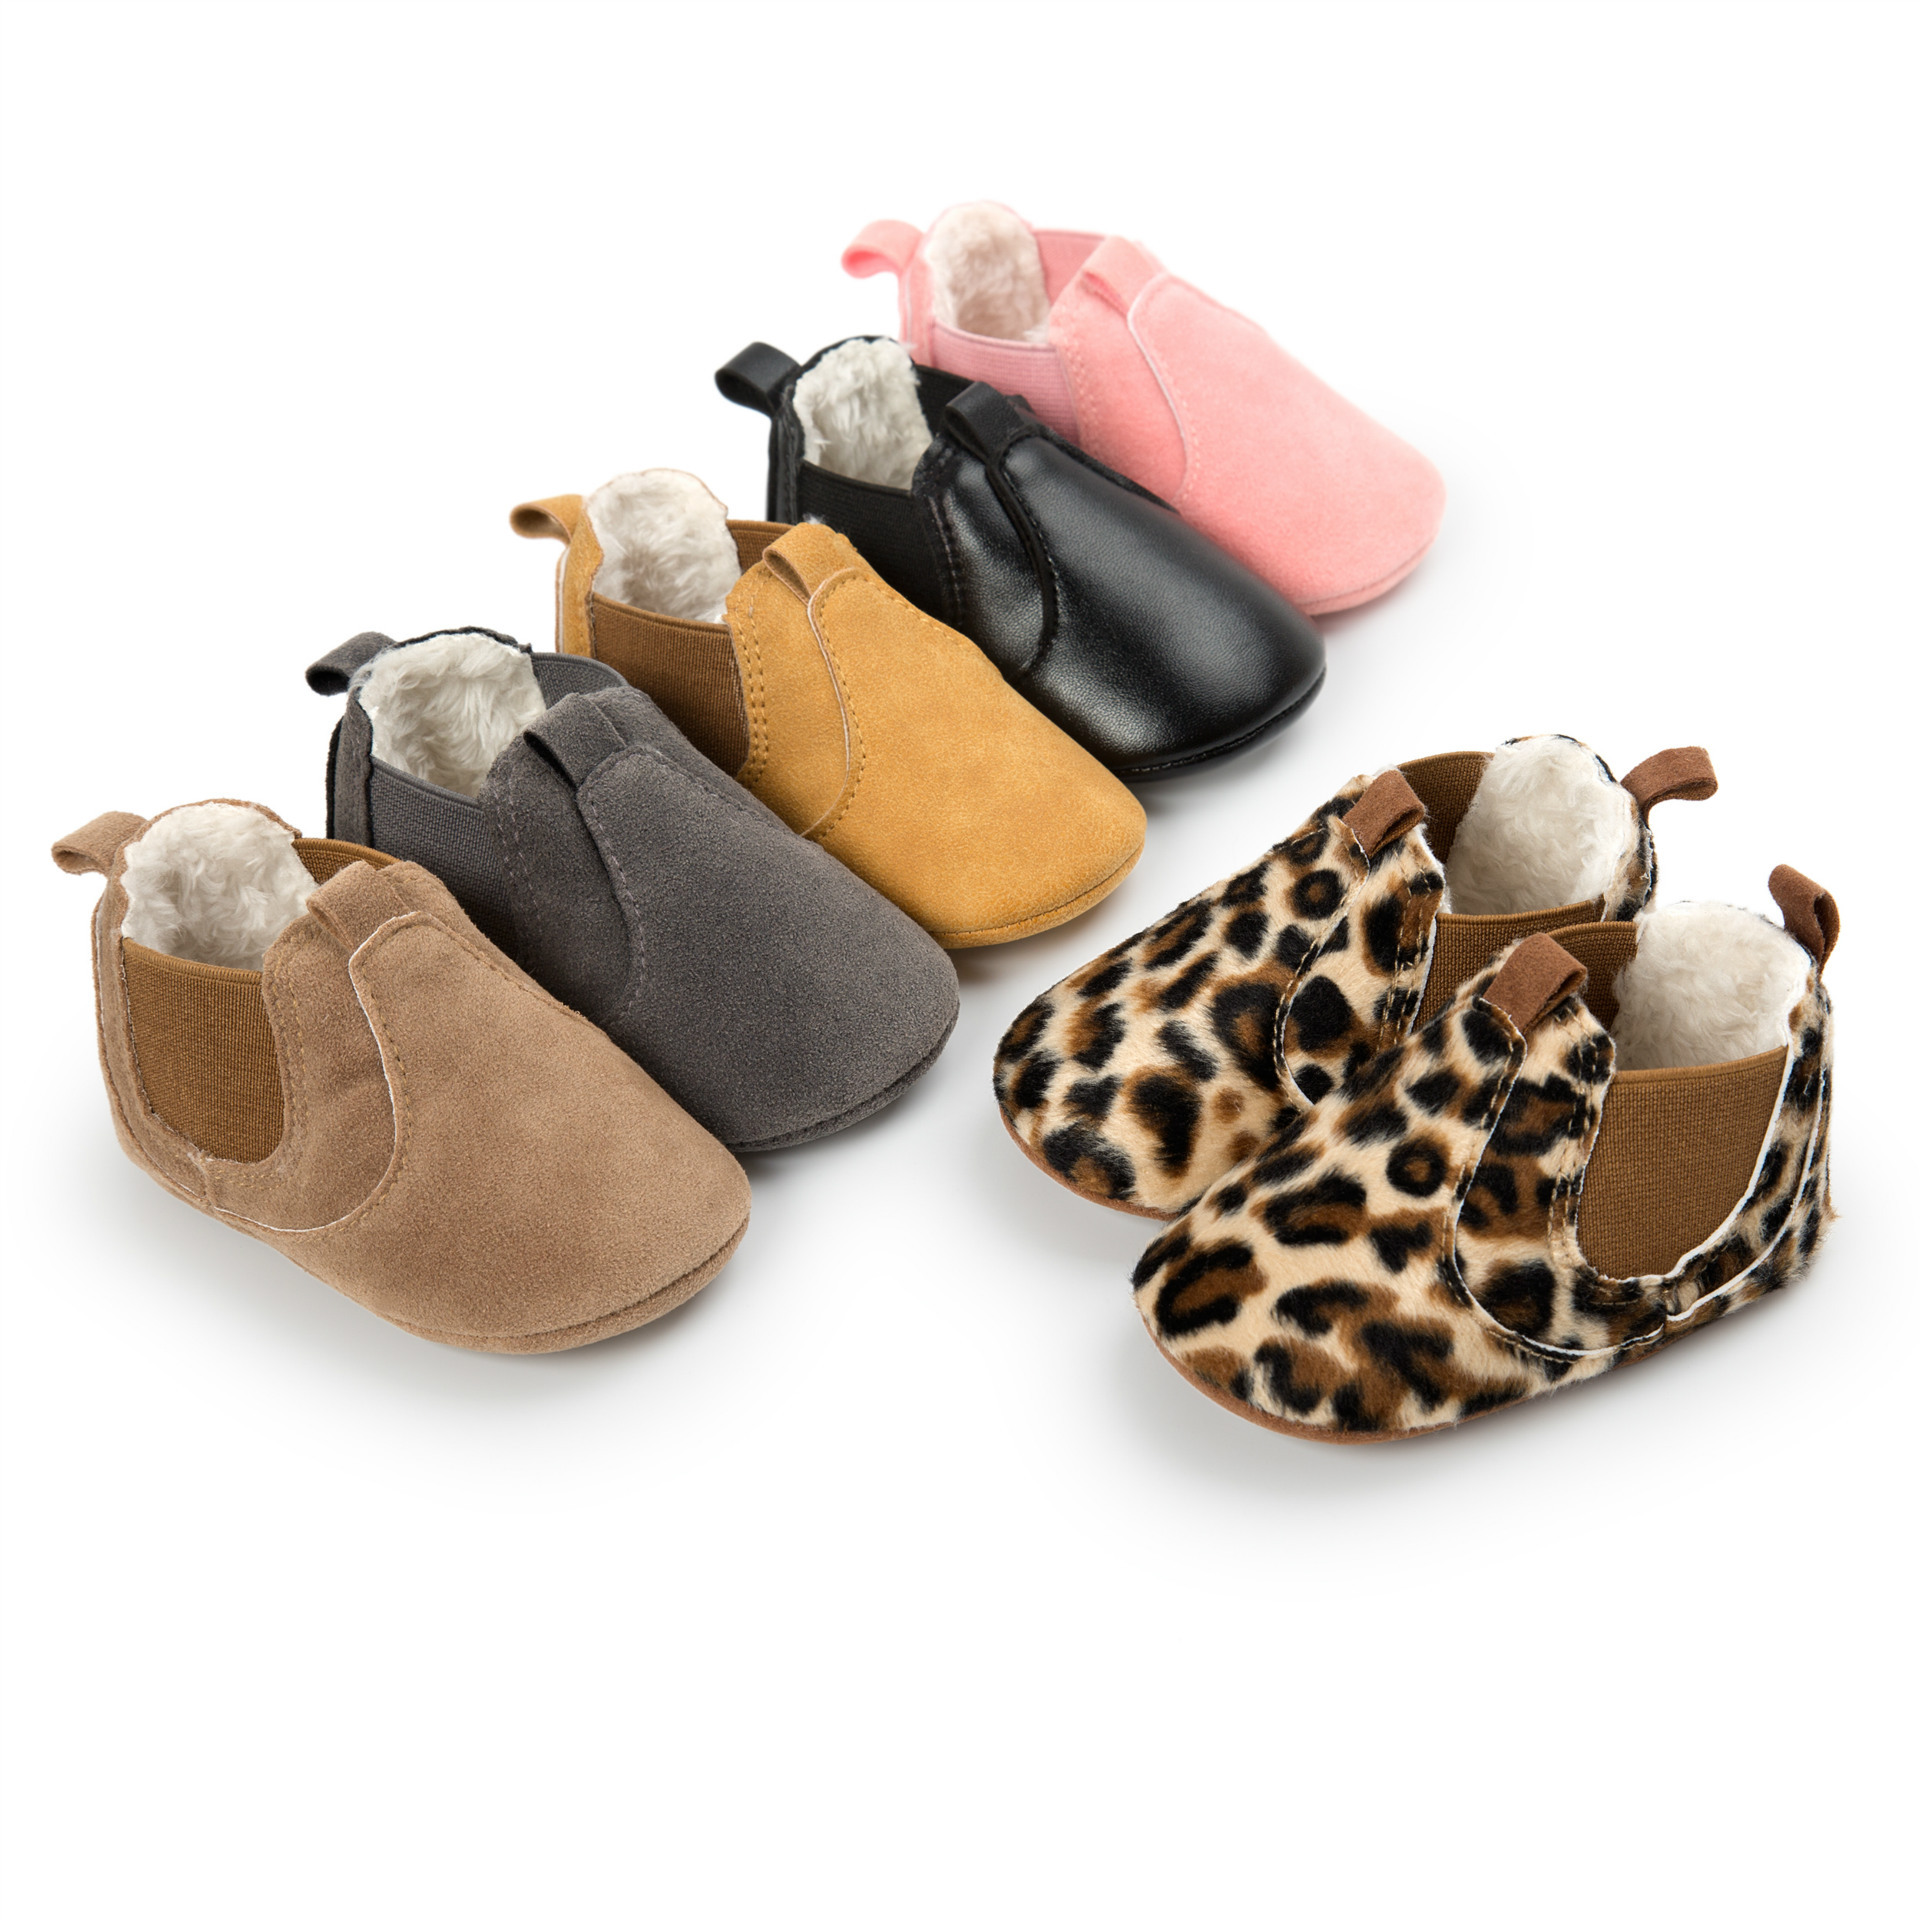 ROMIRUS Winter Small PU Leather Baby Ankle Boots With Plush Fashion Leopard Infant Toddler Shoes Baby Moccasin